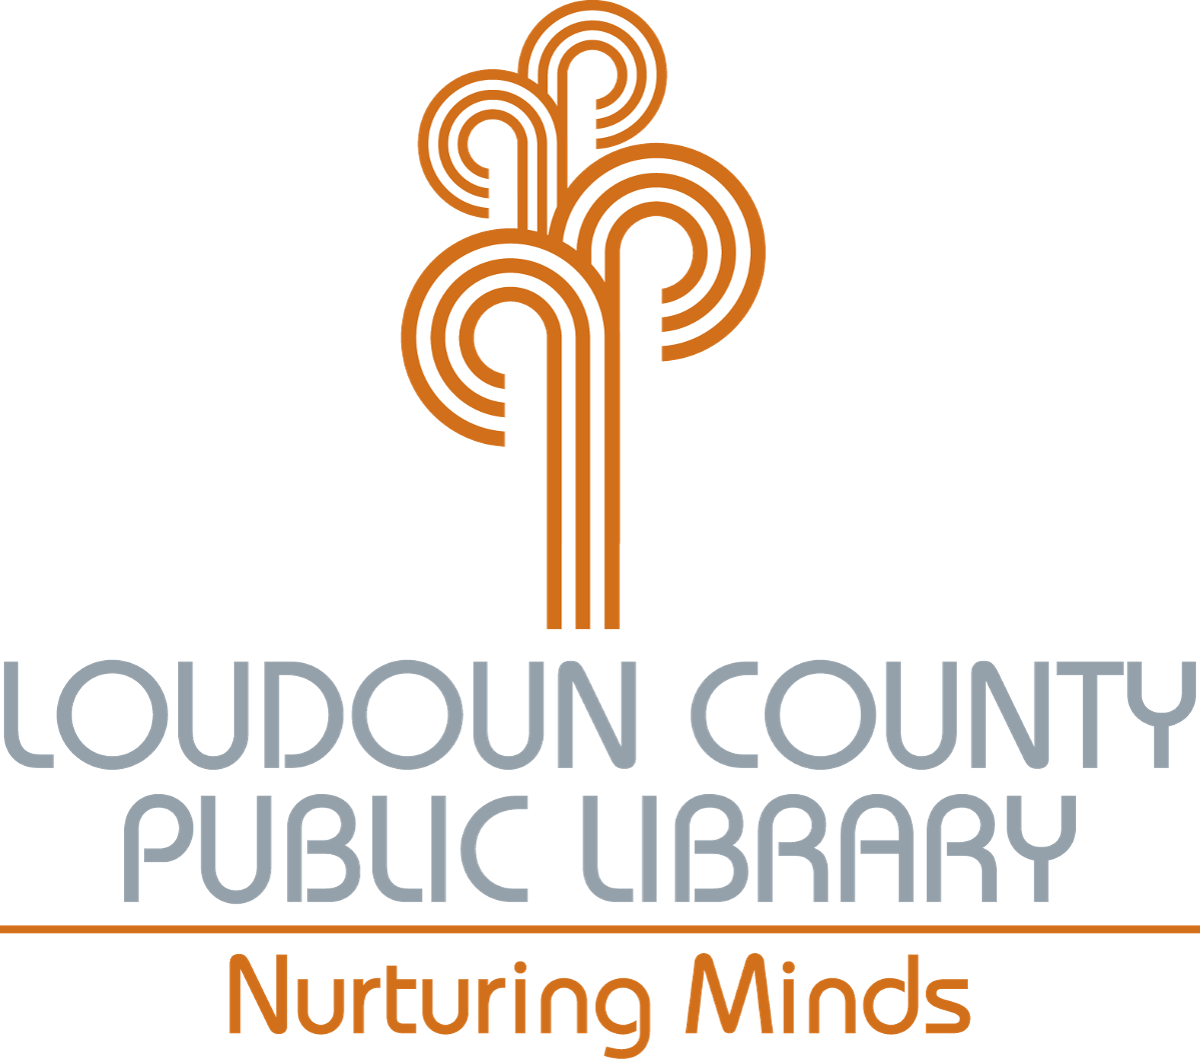 Loudoun County Public Libraries is hosting authors for the festival